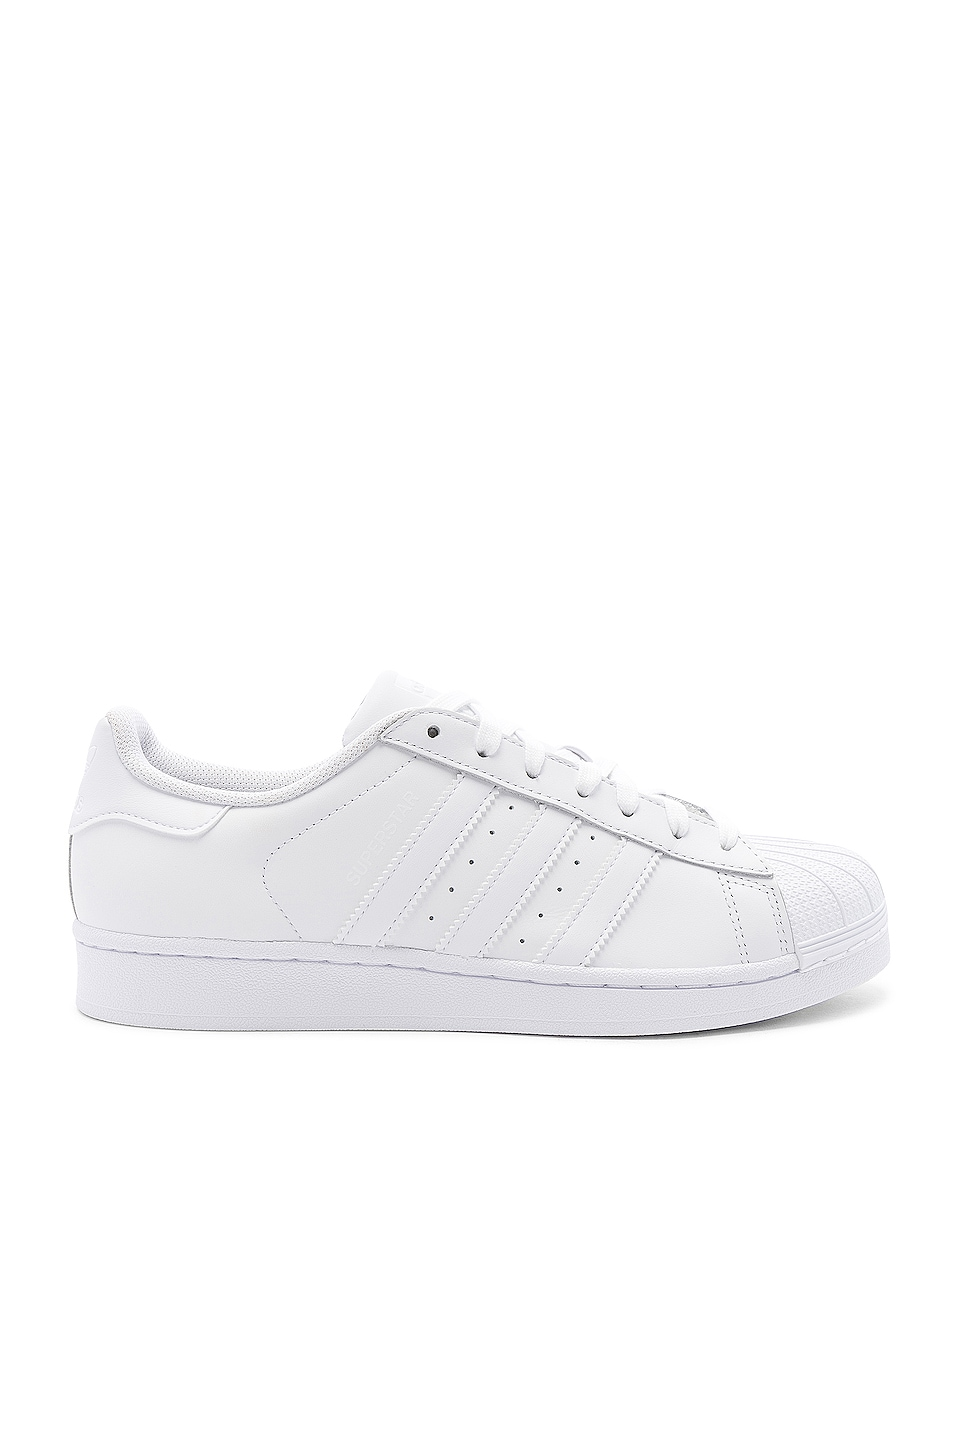 adidas Originals Superstar Foundation in White & White & White